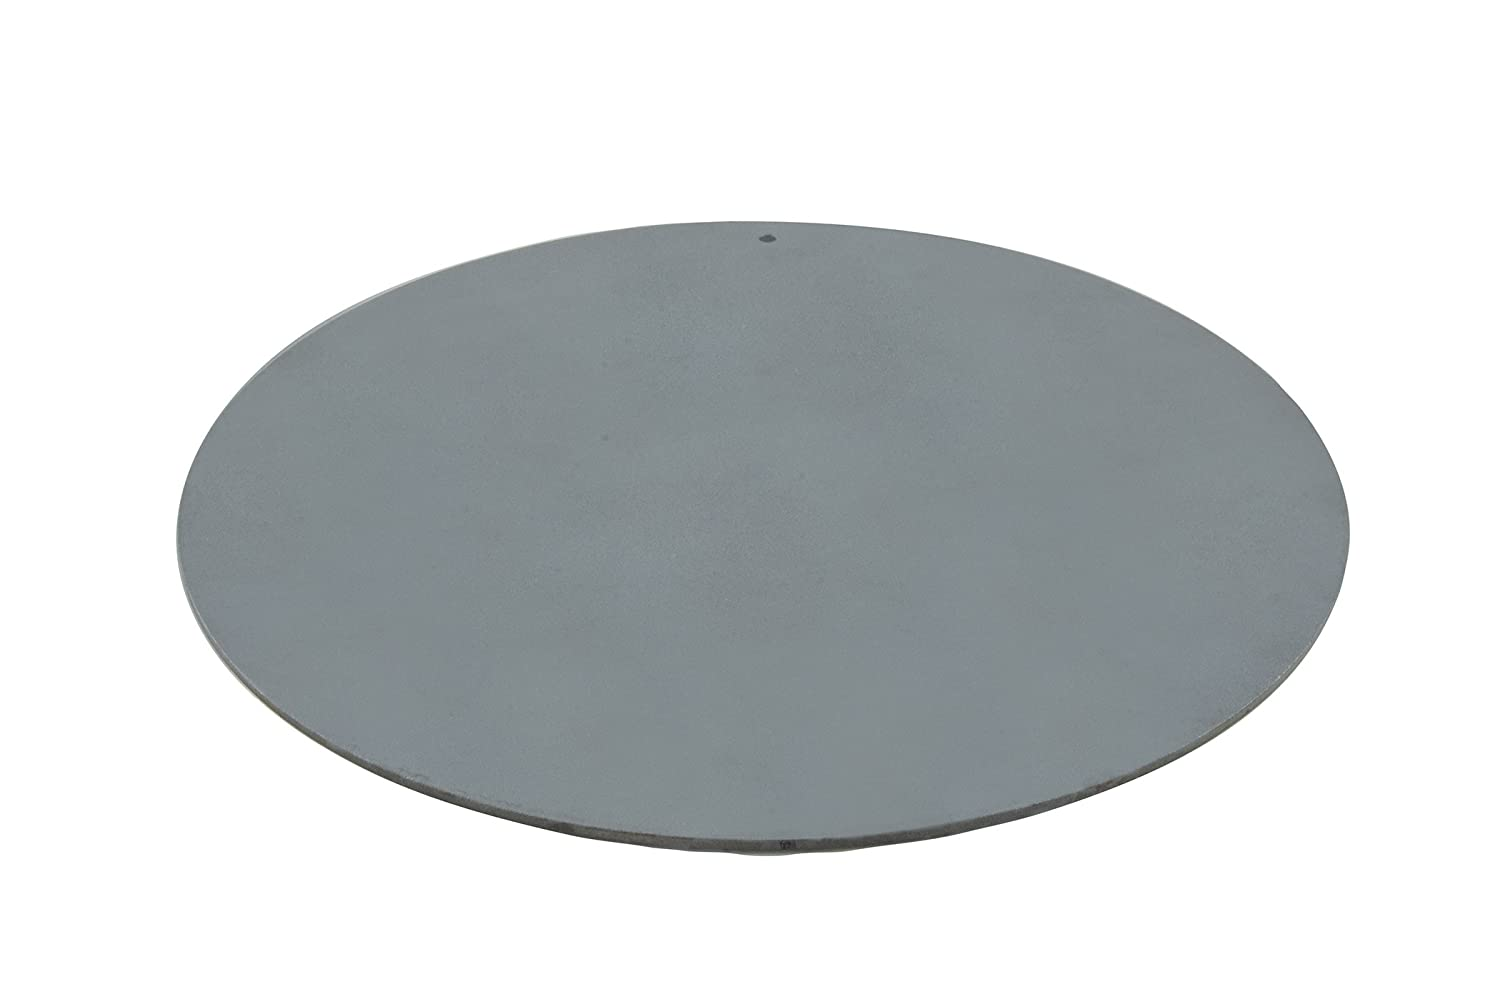 "Pizzacraft PC0307 Round Steel Baking Plate for Oven or BBQ Grill, 14"" Diameter"